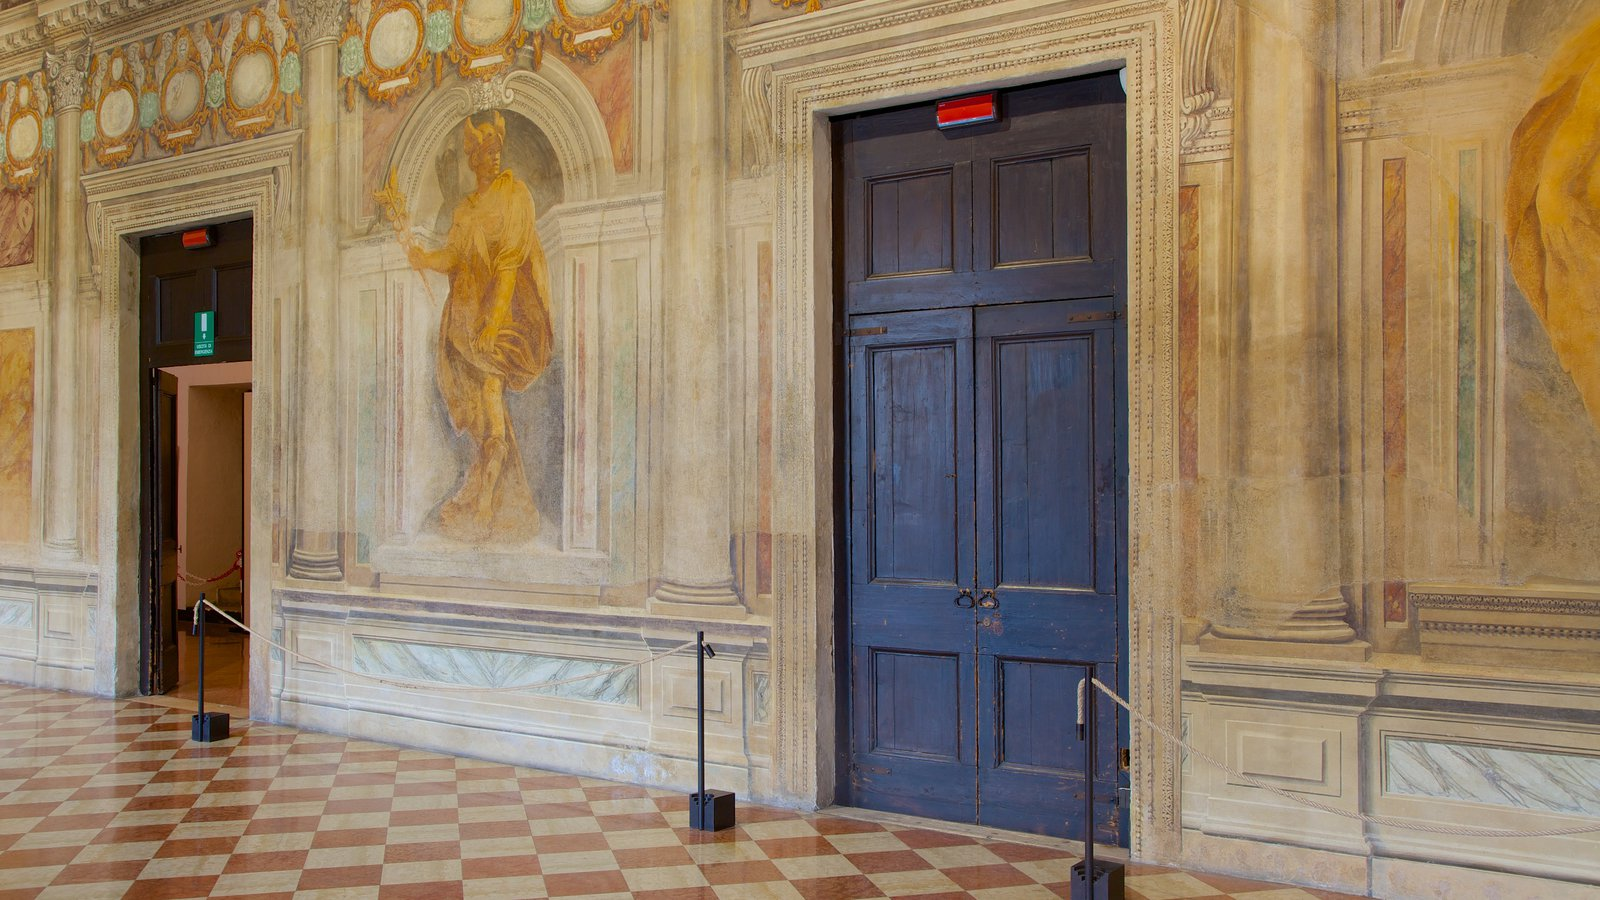 Vicenza which includes art, interior views and theater scenes